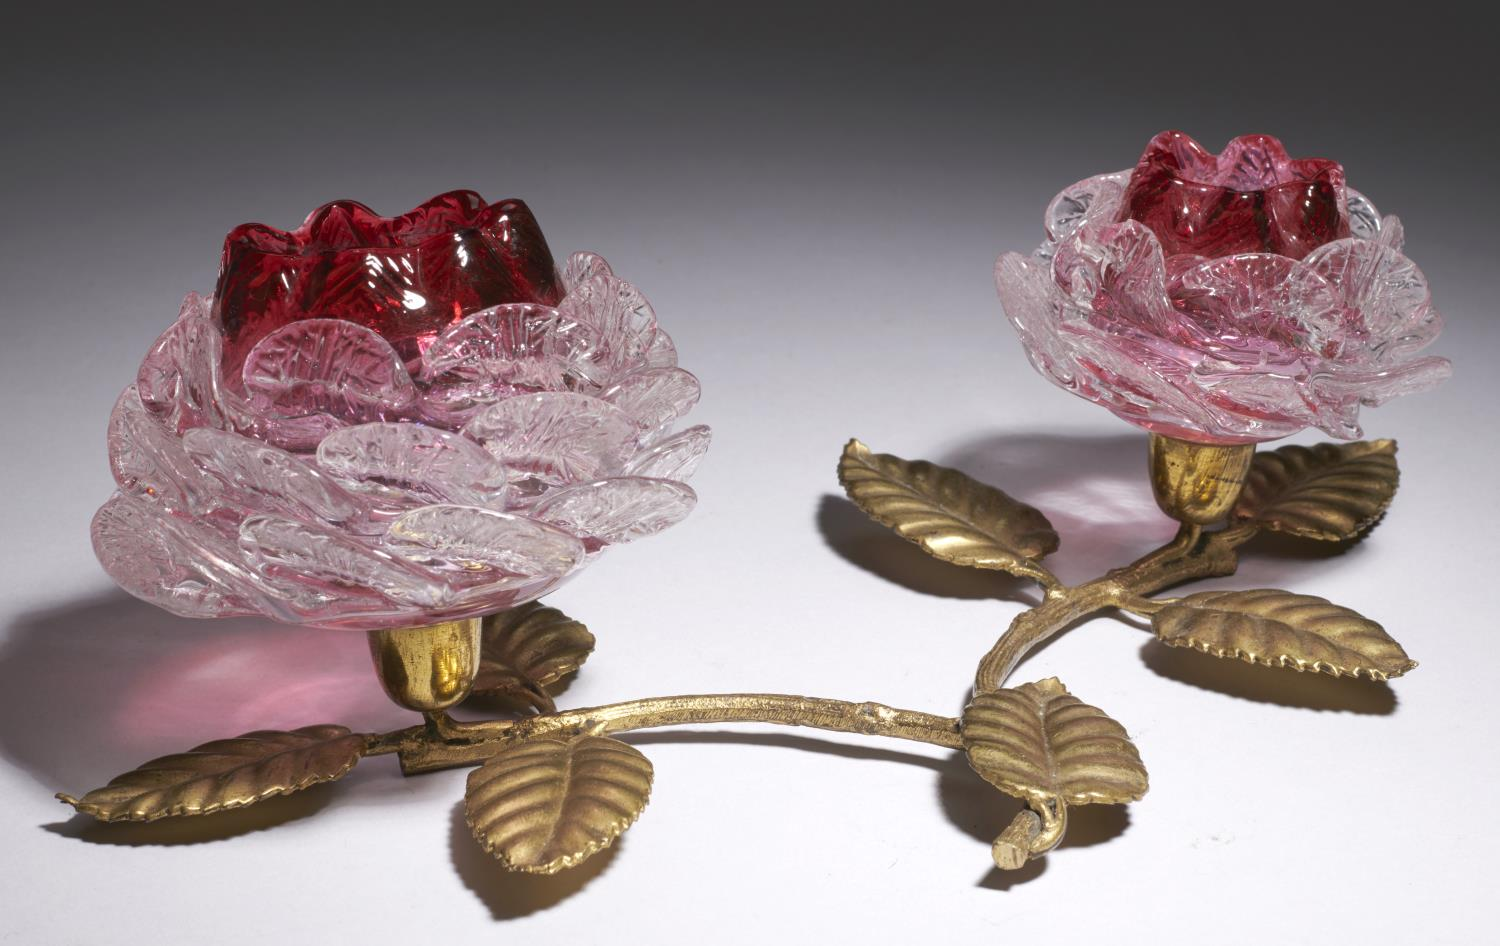 Lot 370 - A VICTORIAN CRANBERRY AND SHELL PINCERED CLEAR GLASS TWIN FLOWER TABLE ORNAMENT, PROBABLY